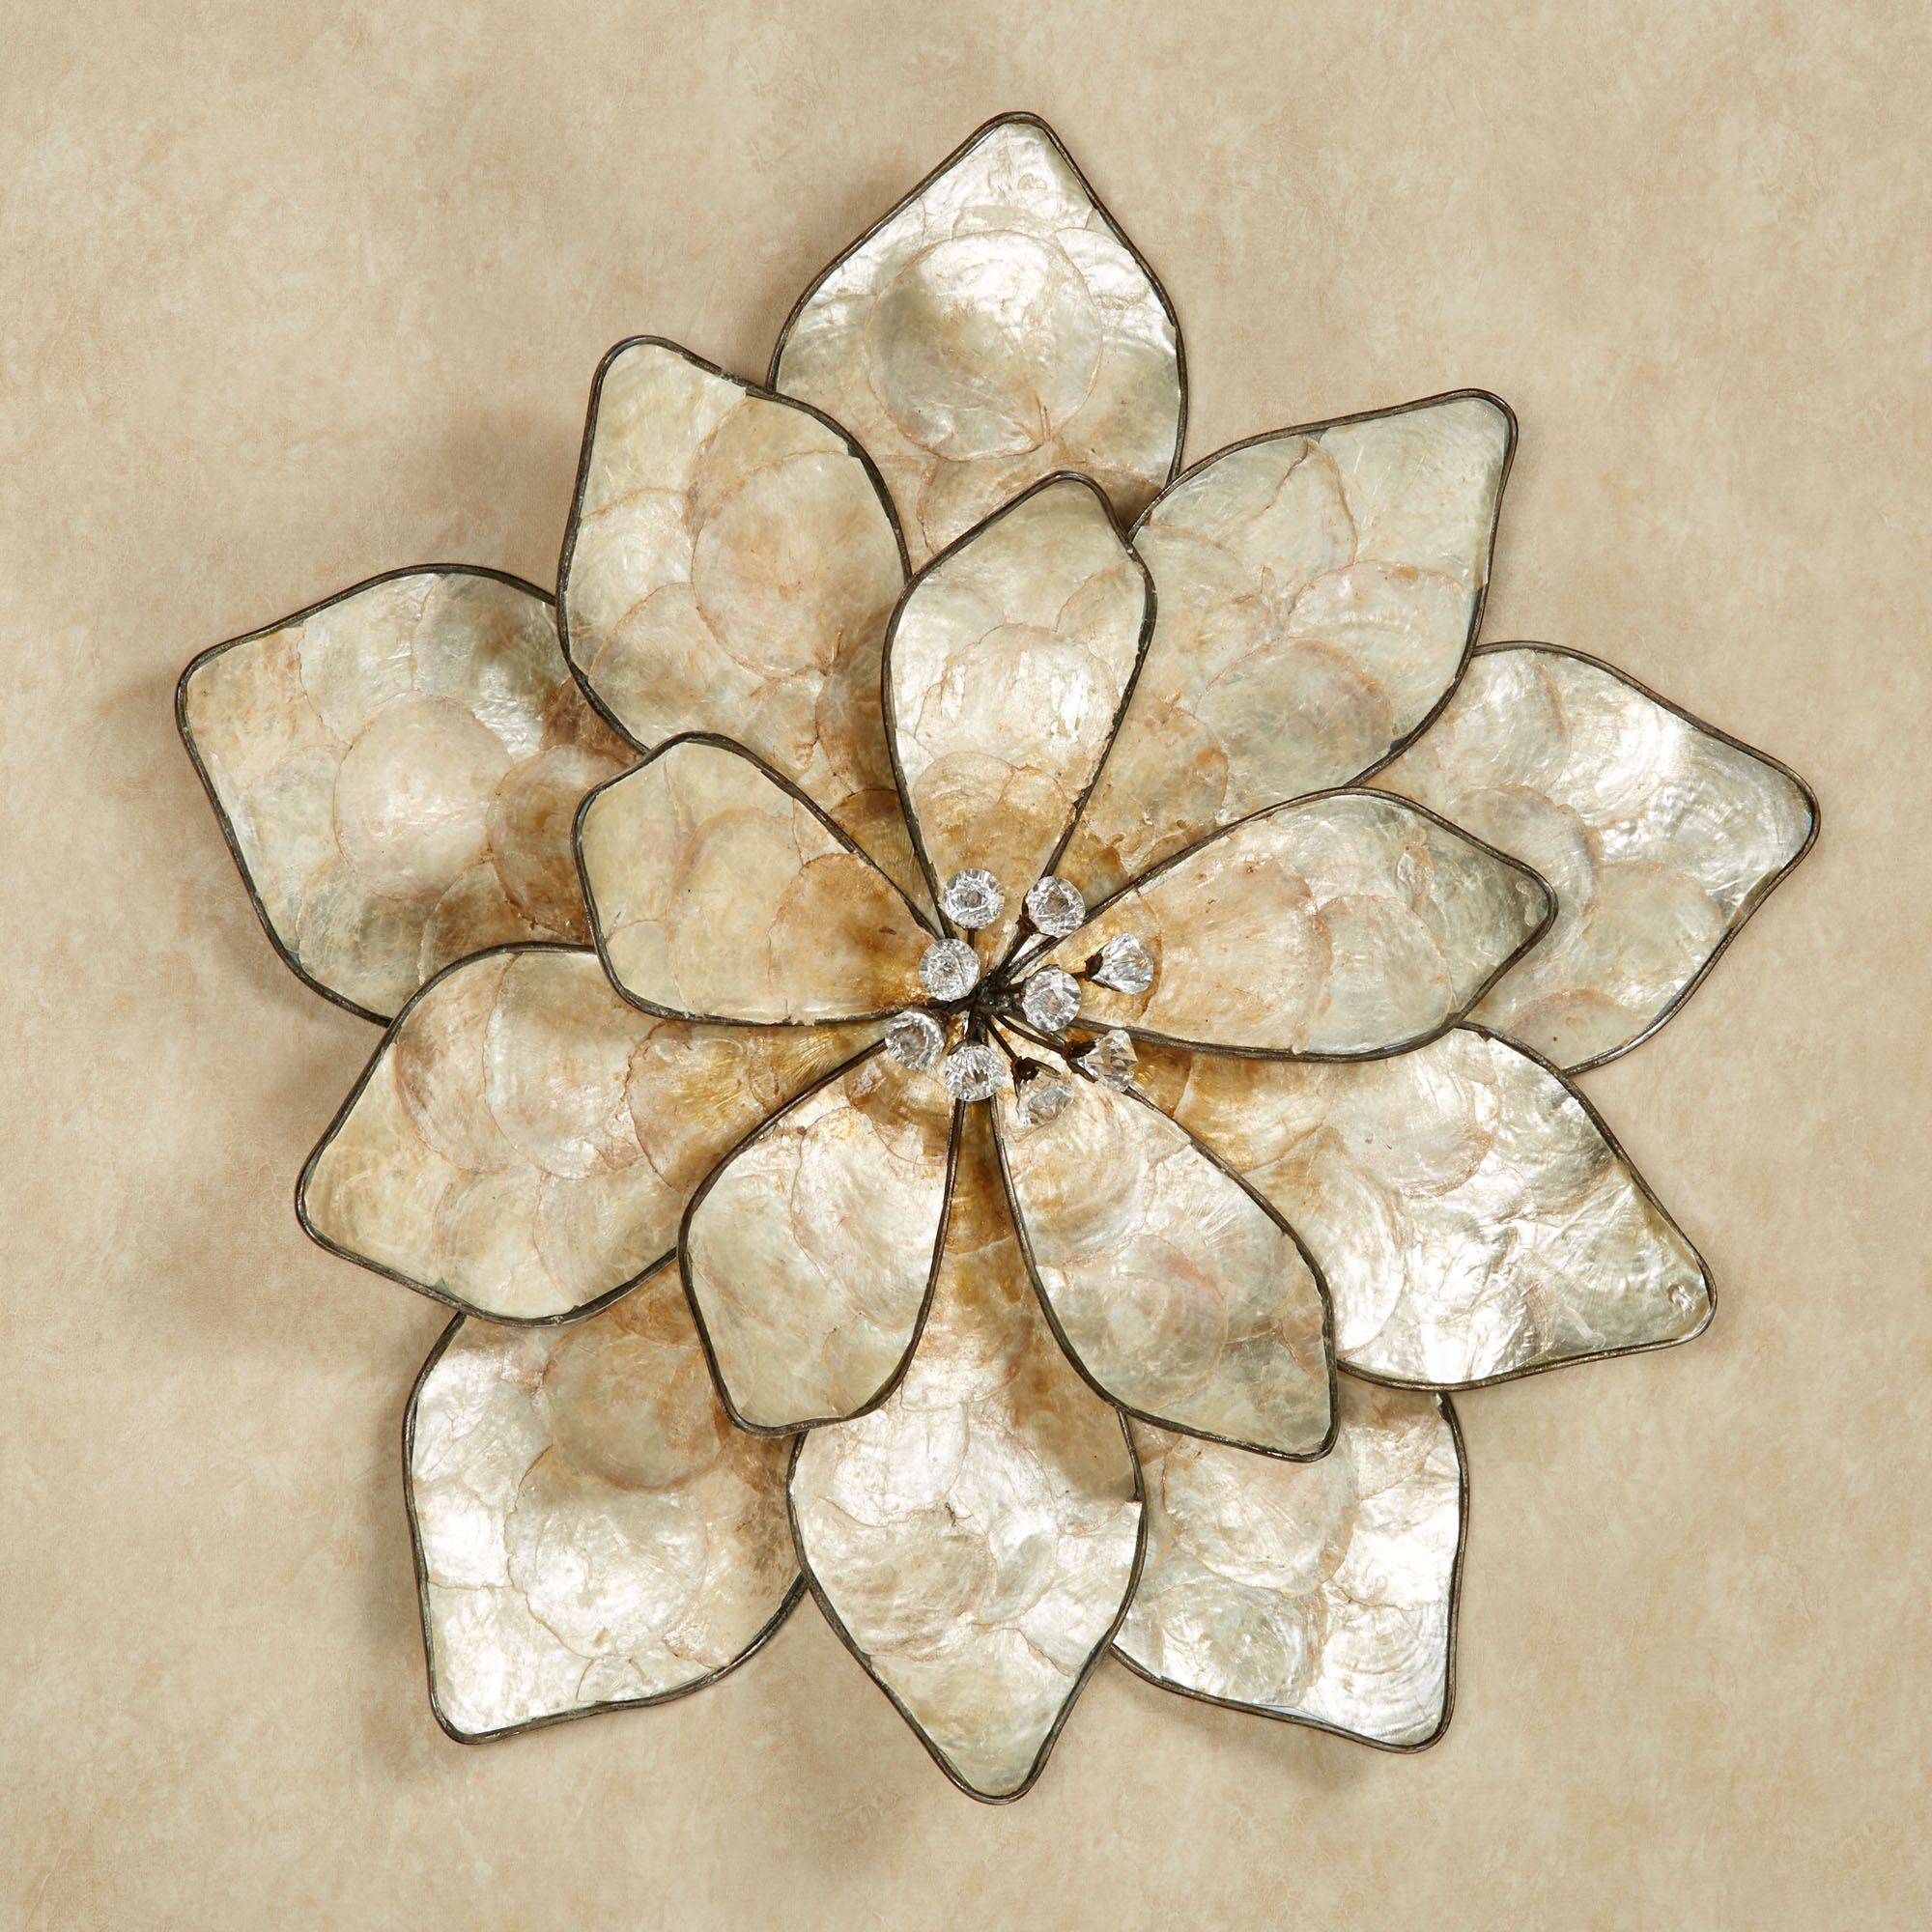 Astounding capiz shells wall mirror gold with light capiz shells for your home lighting ideas